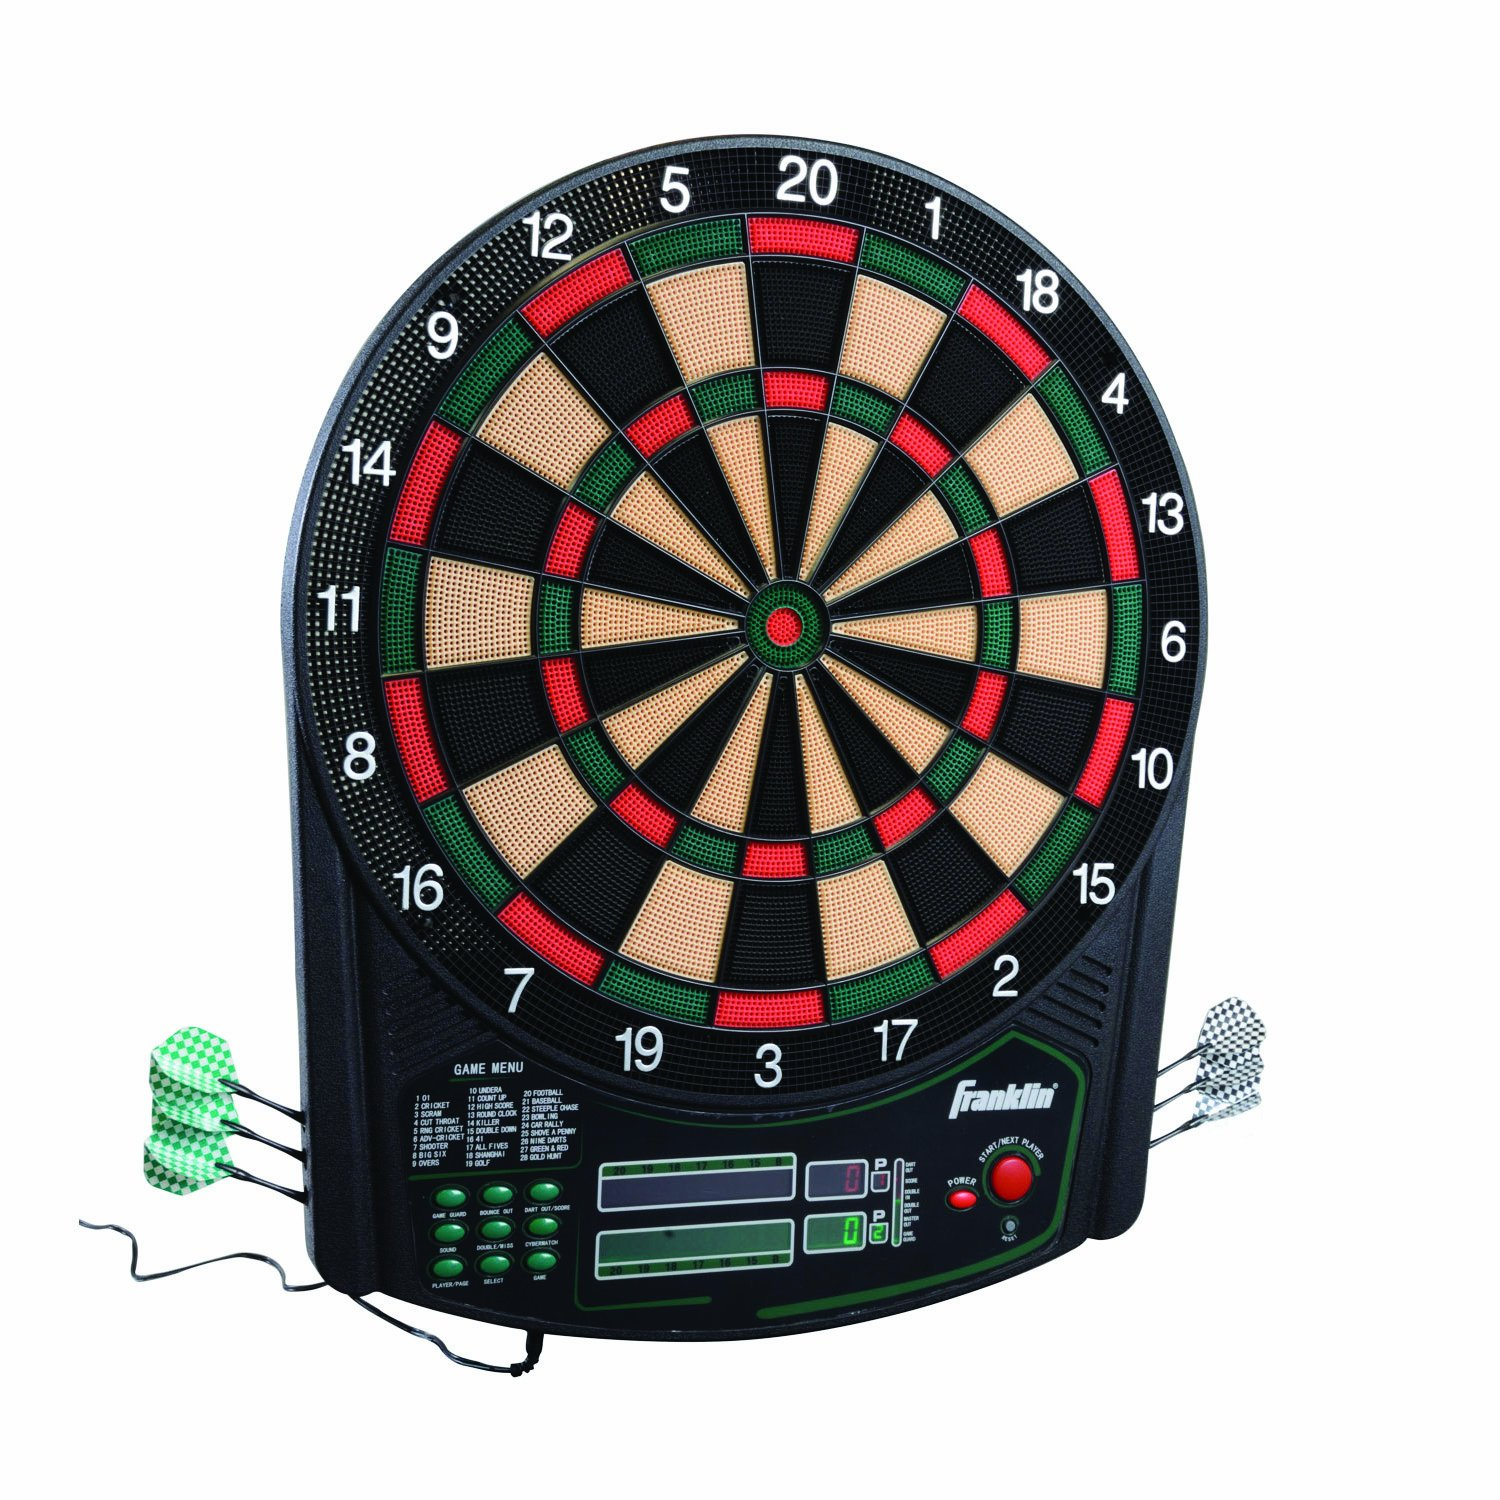 Top 20 Best Electronic Dartboards Reviews 2019-2020 On